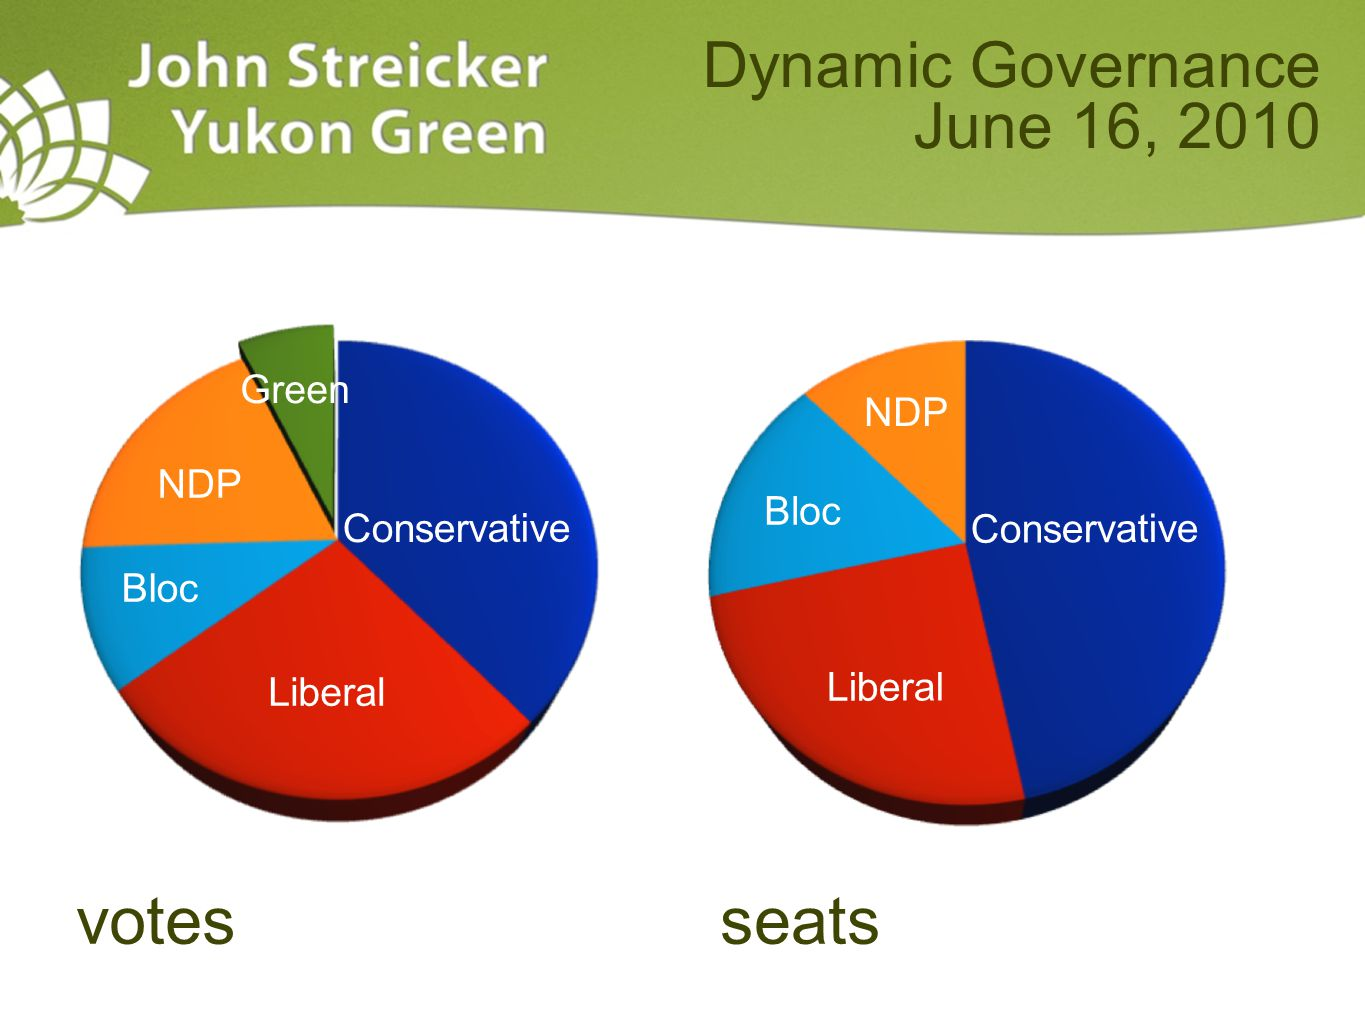 Dynamic Governance June 16, 2010 votesseats Liberal Conservative Bloc NDP Green Liberal Conservative Bloc NDP